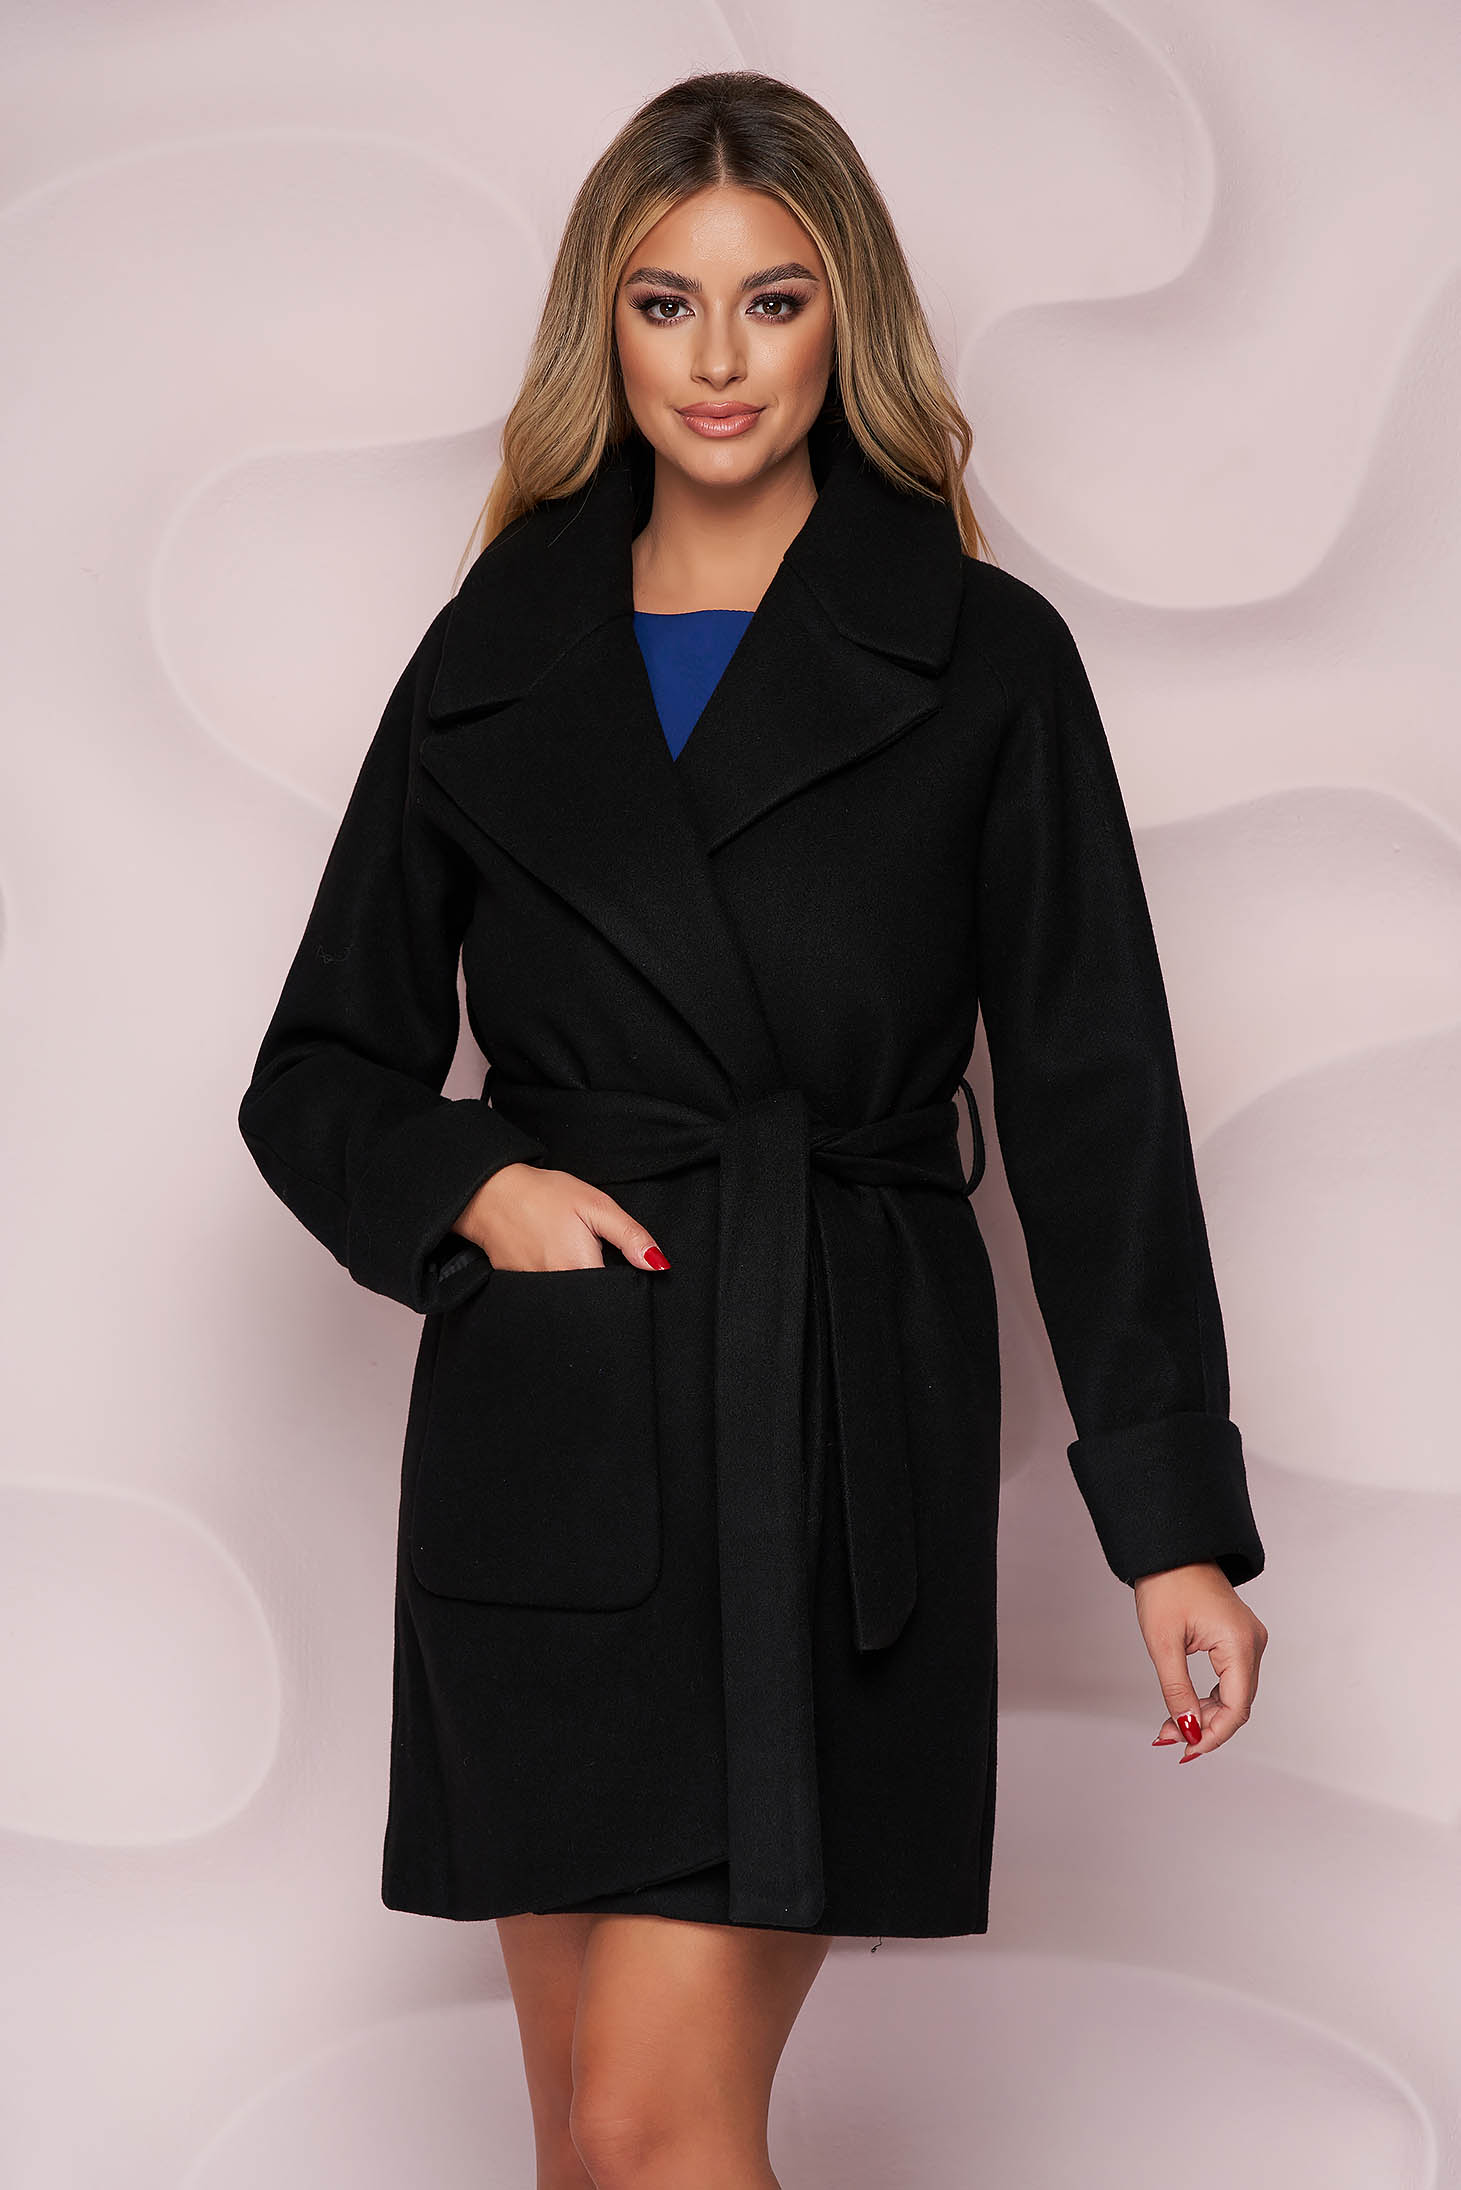 Black coat straight thick fabric soft fabric office detachable cord